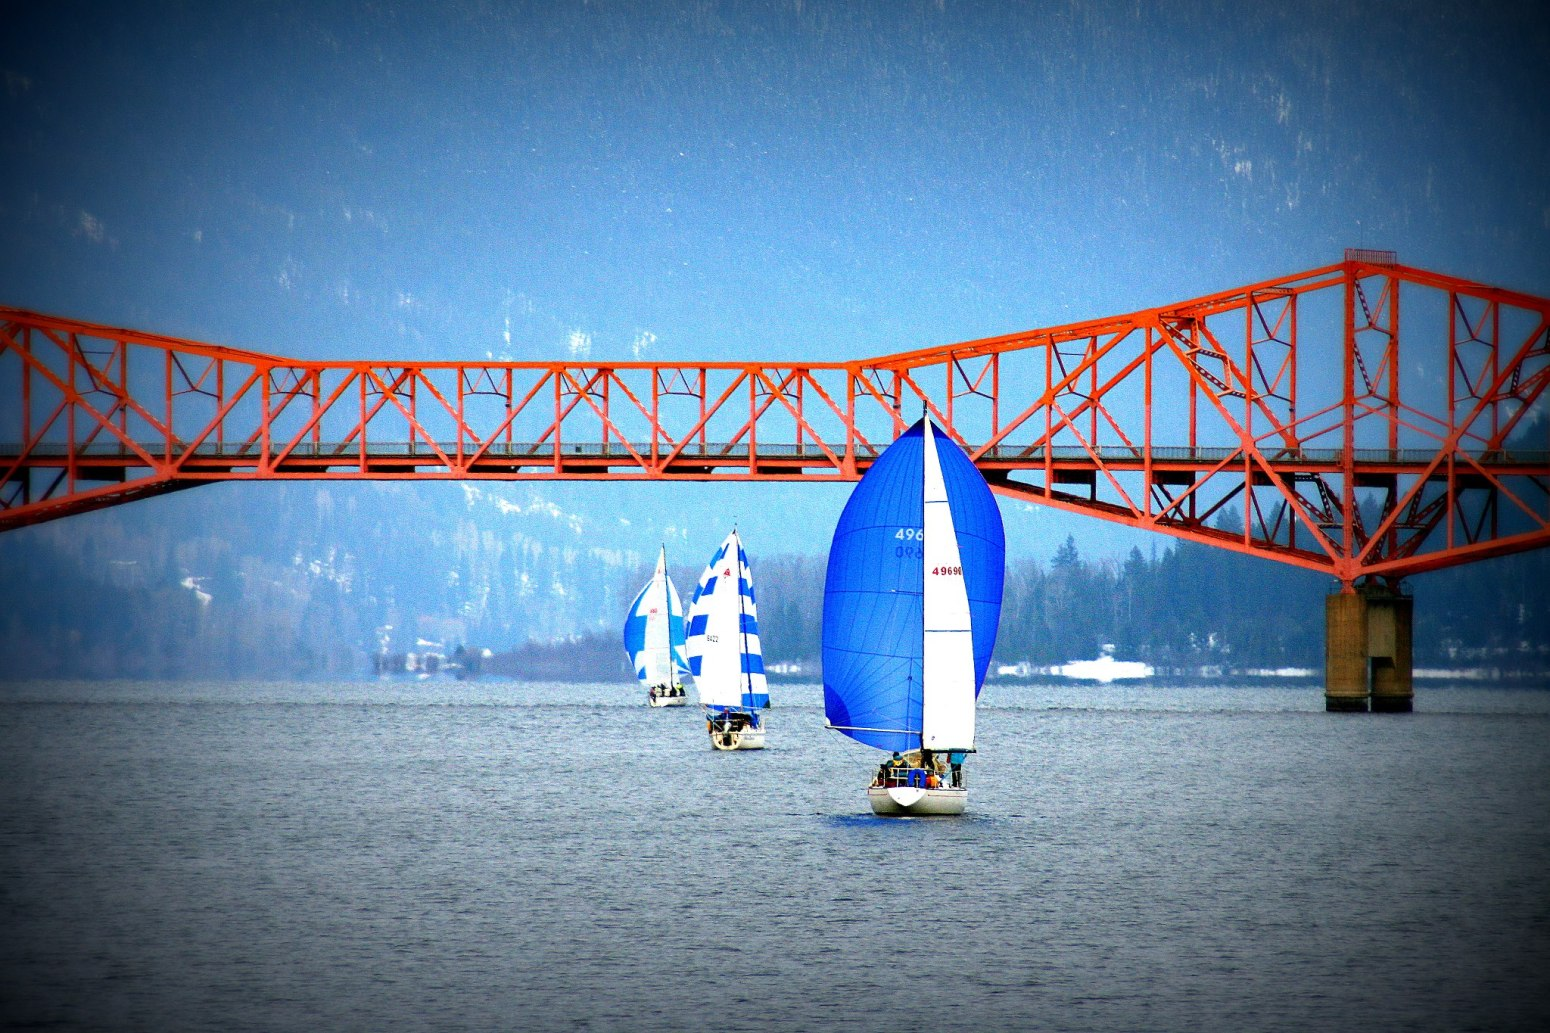 Spinnaker run on Kootenay Lake